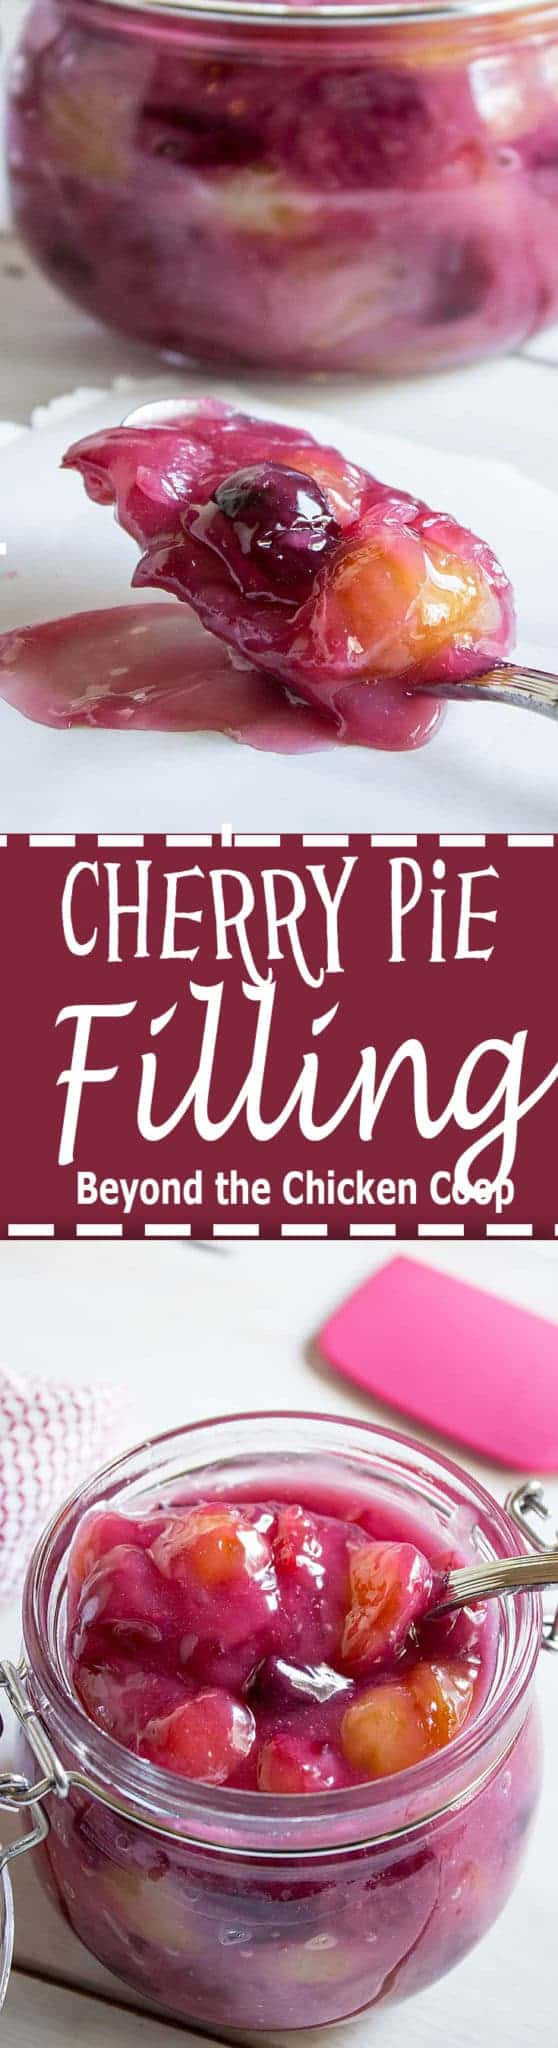 Take full advantage of cherry season. This cherry pie filling can be made using sweet or tart cherries. #cherries #cherrypiefilling #cherrypie